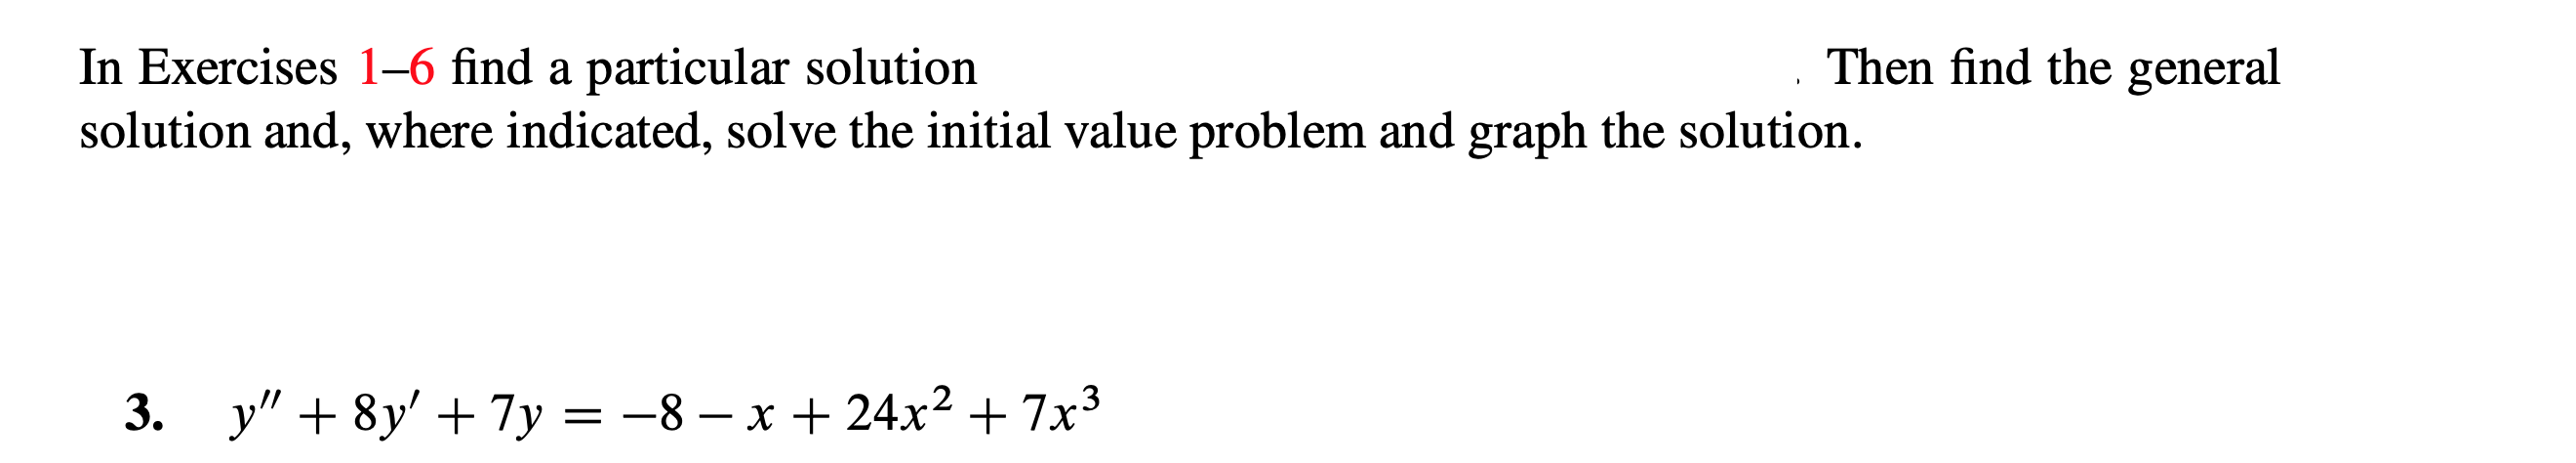 """Then find the general In Exercises 1-6 find a particular solution solution and, where indicated, solve the initial value problem and graph the solution. -8 - x + 24x2 + 7x3 y""""8y7y _"""